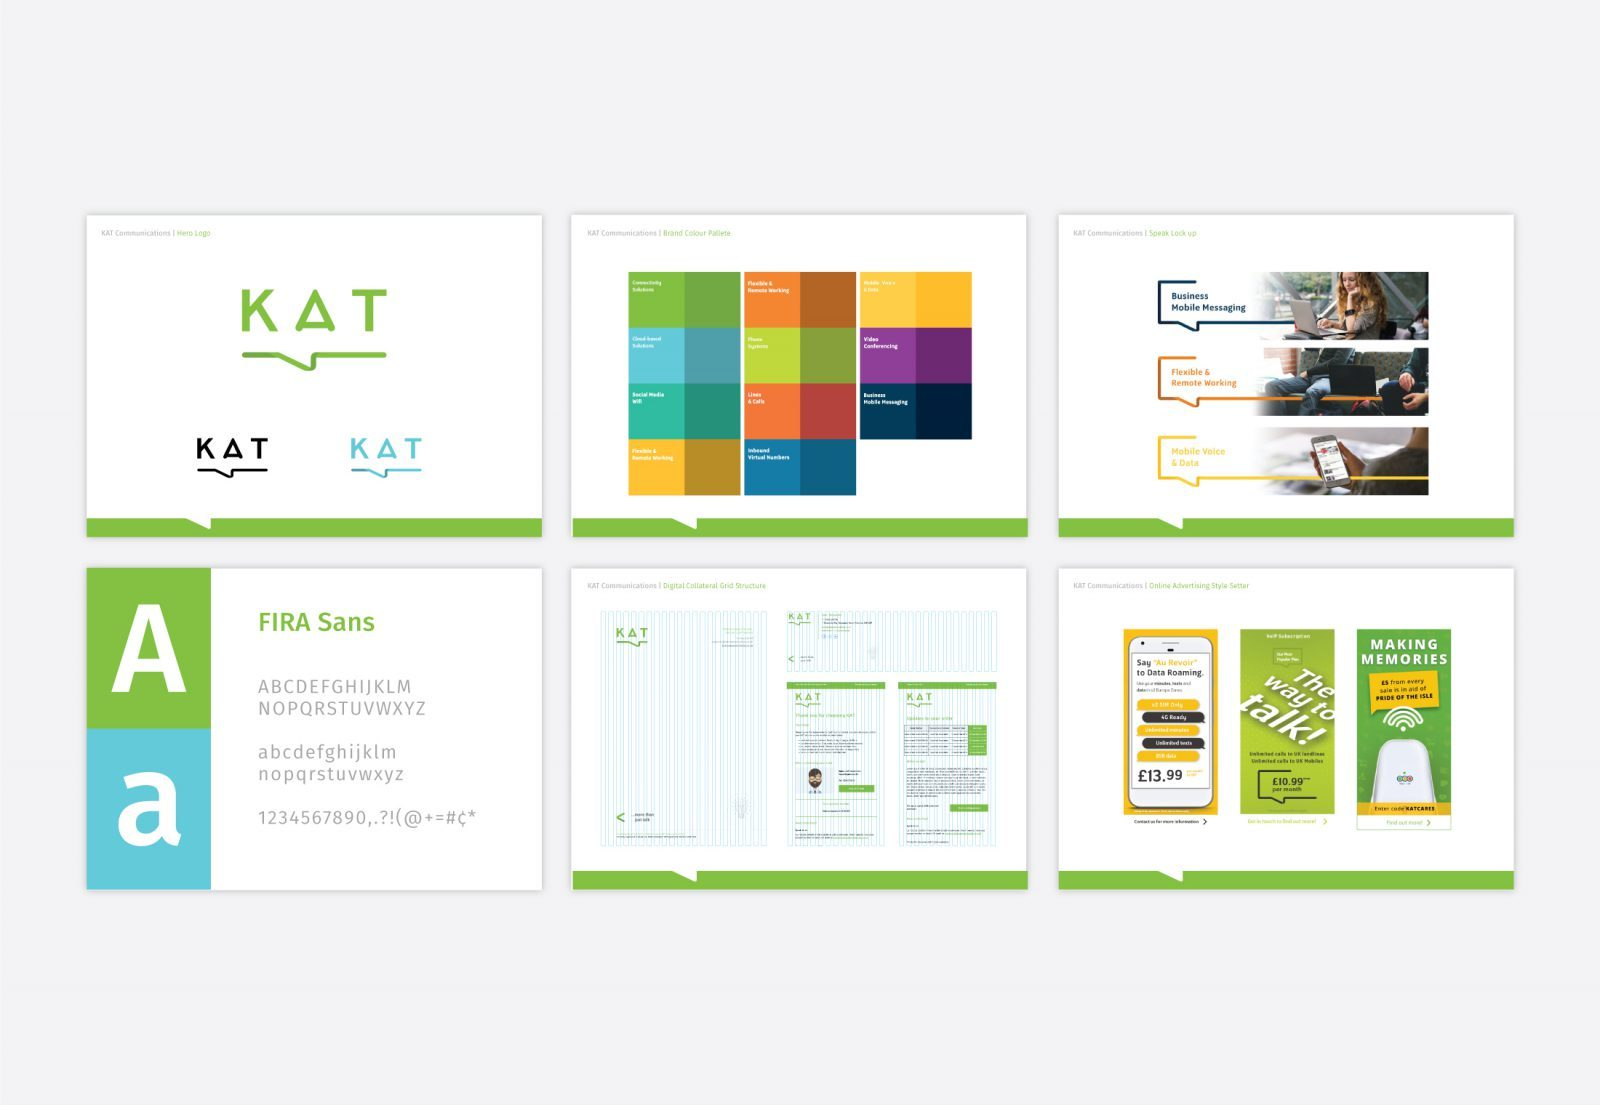 KAT Communications Brand Guidelines